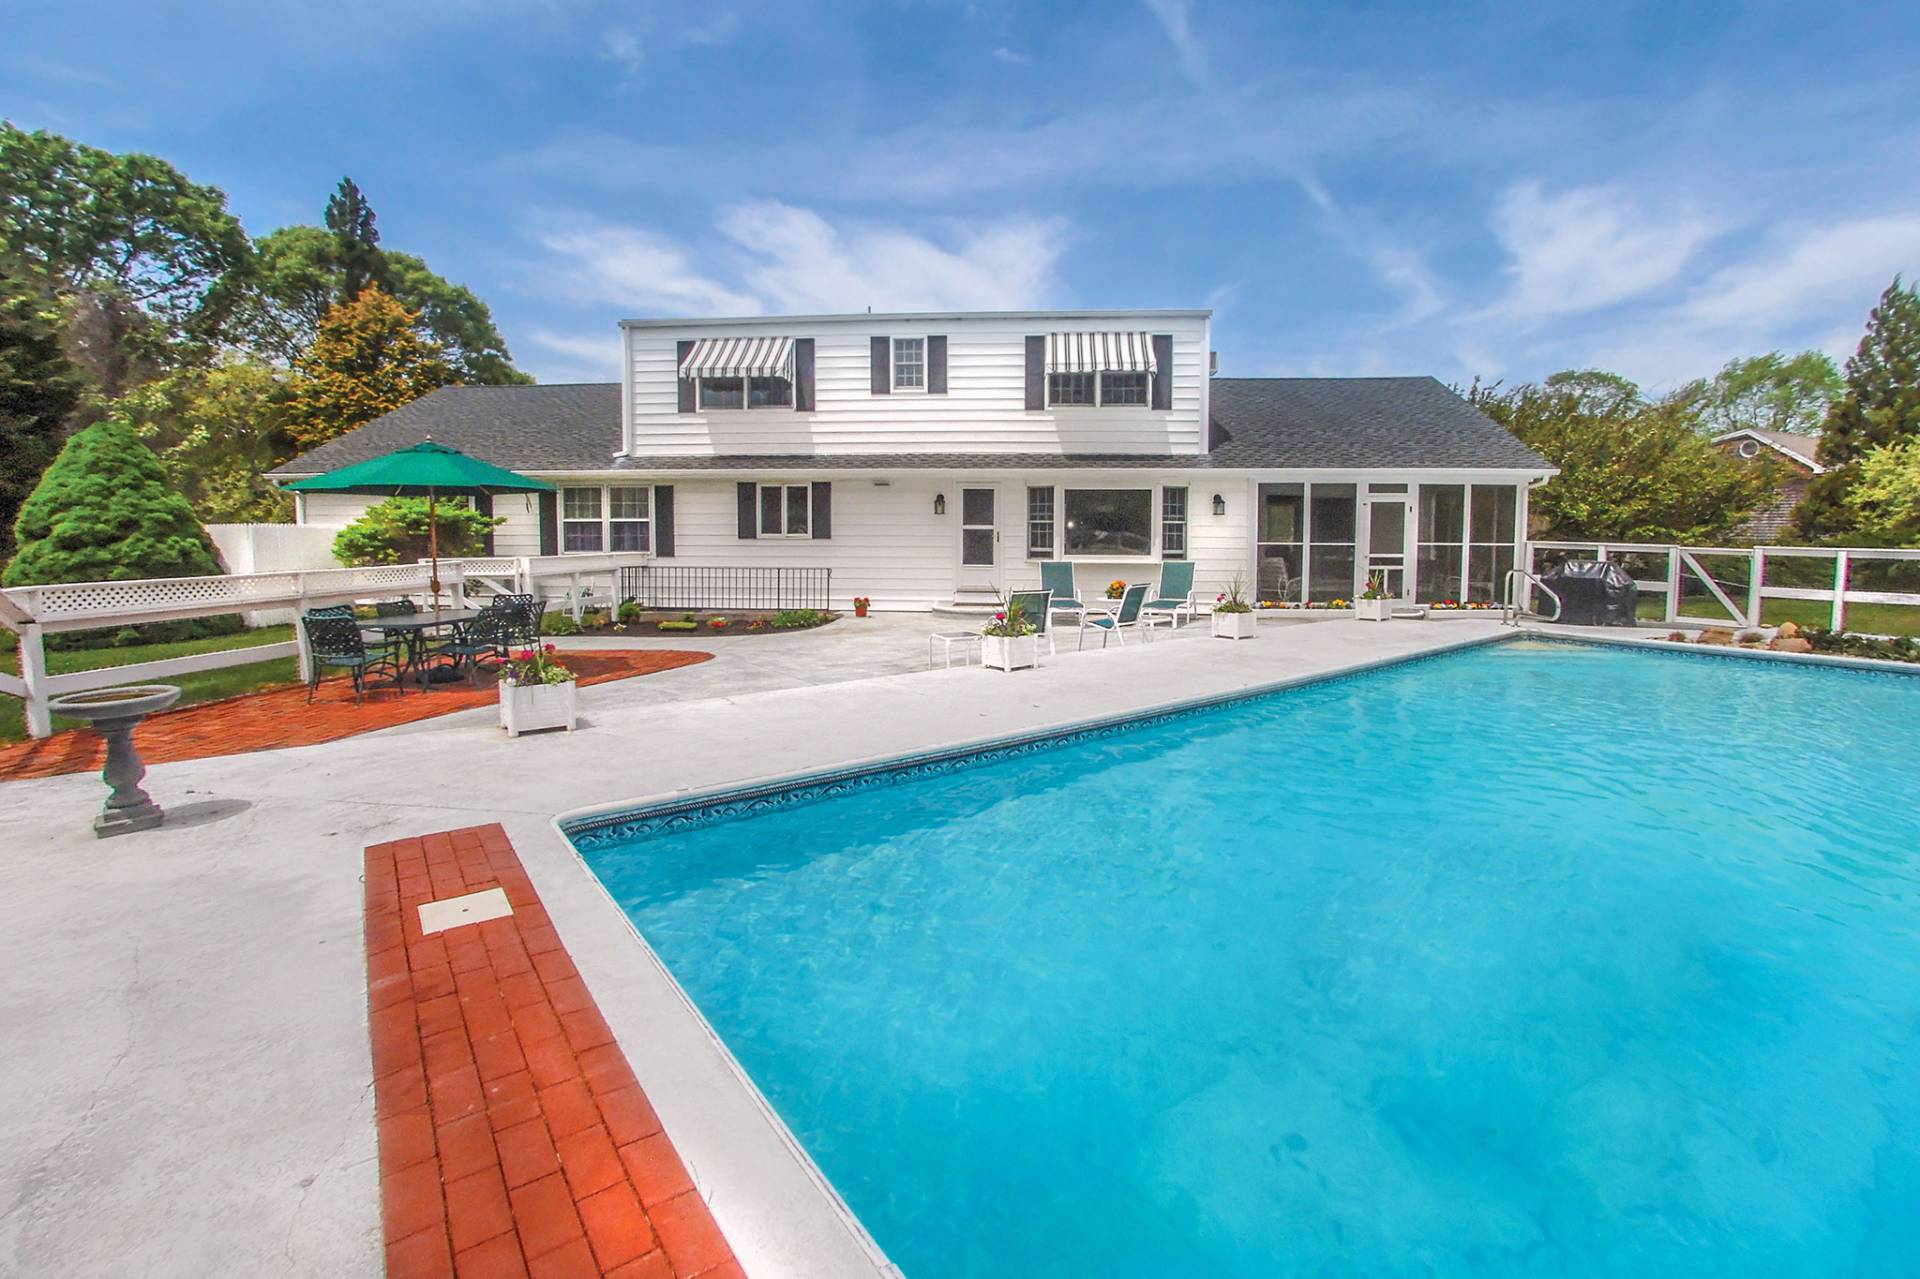 Single Family Home for Sale at Bayfront With Pool In Estate Section Shelter Island 16 Westmoreland Drive, Shelter Island, New York